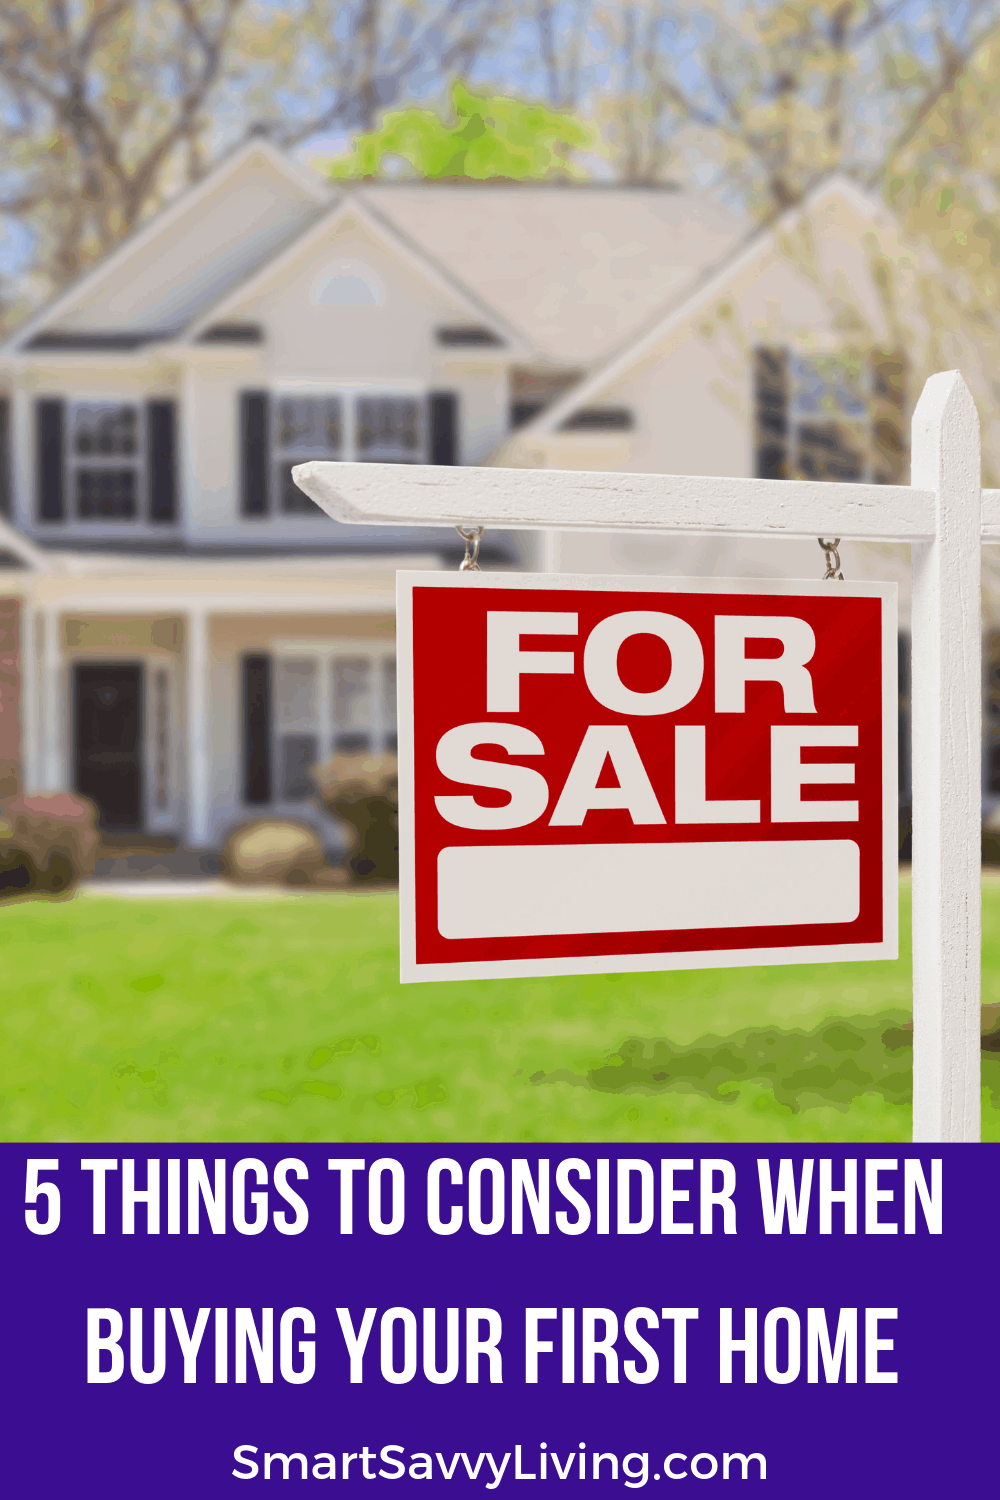 5 Things to Consider When Buying Your First Home 1